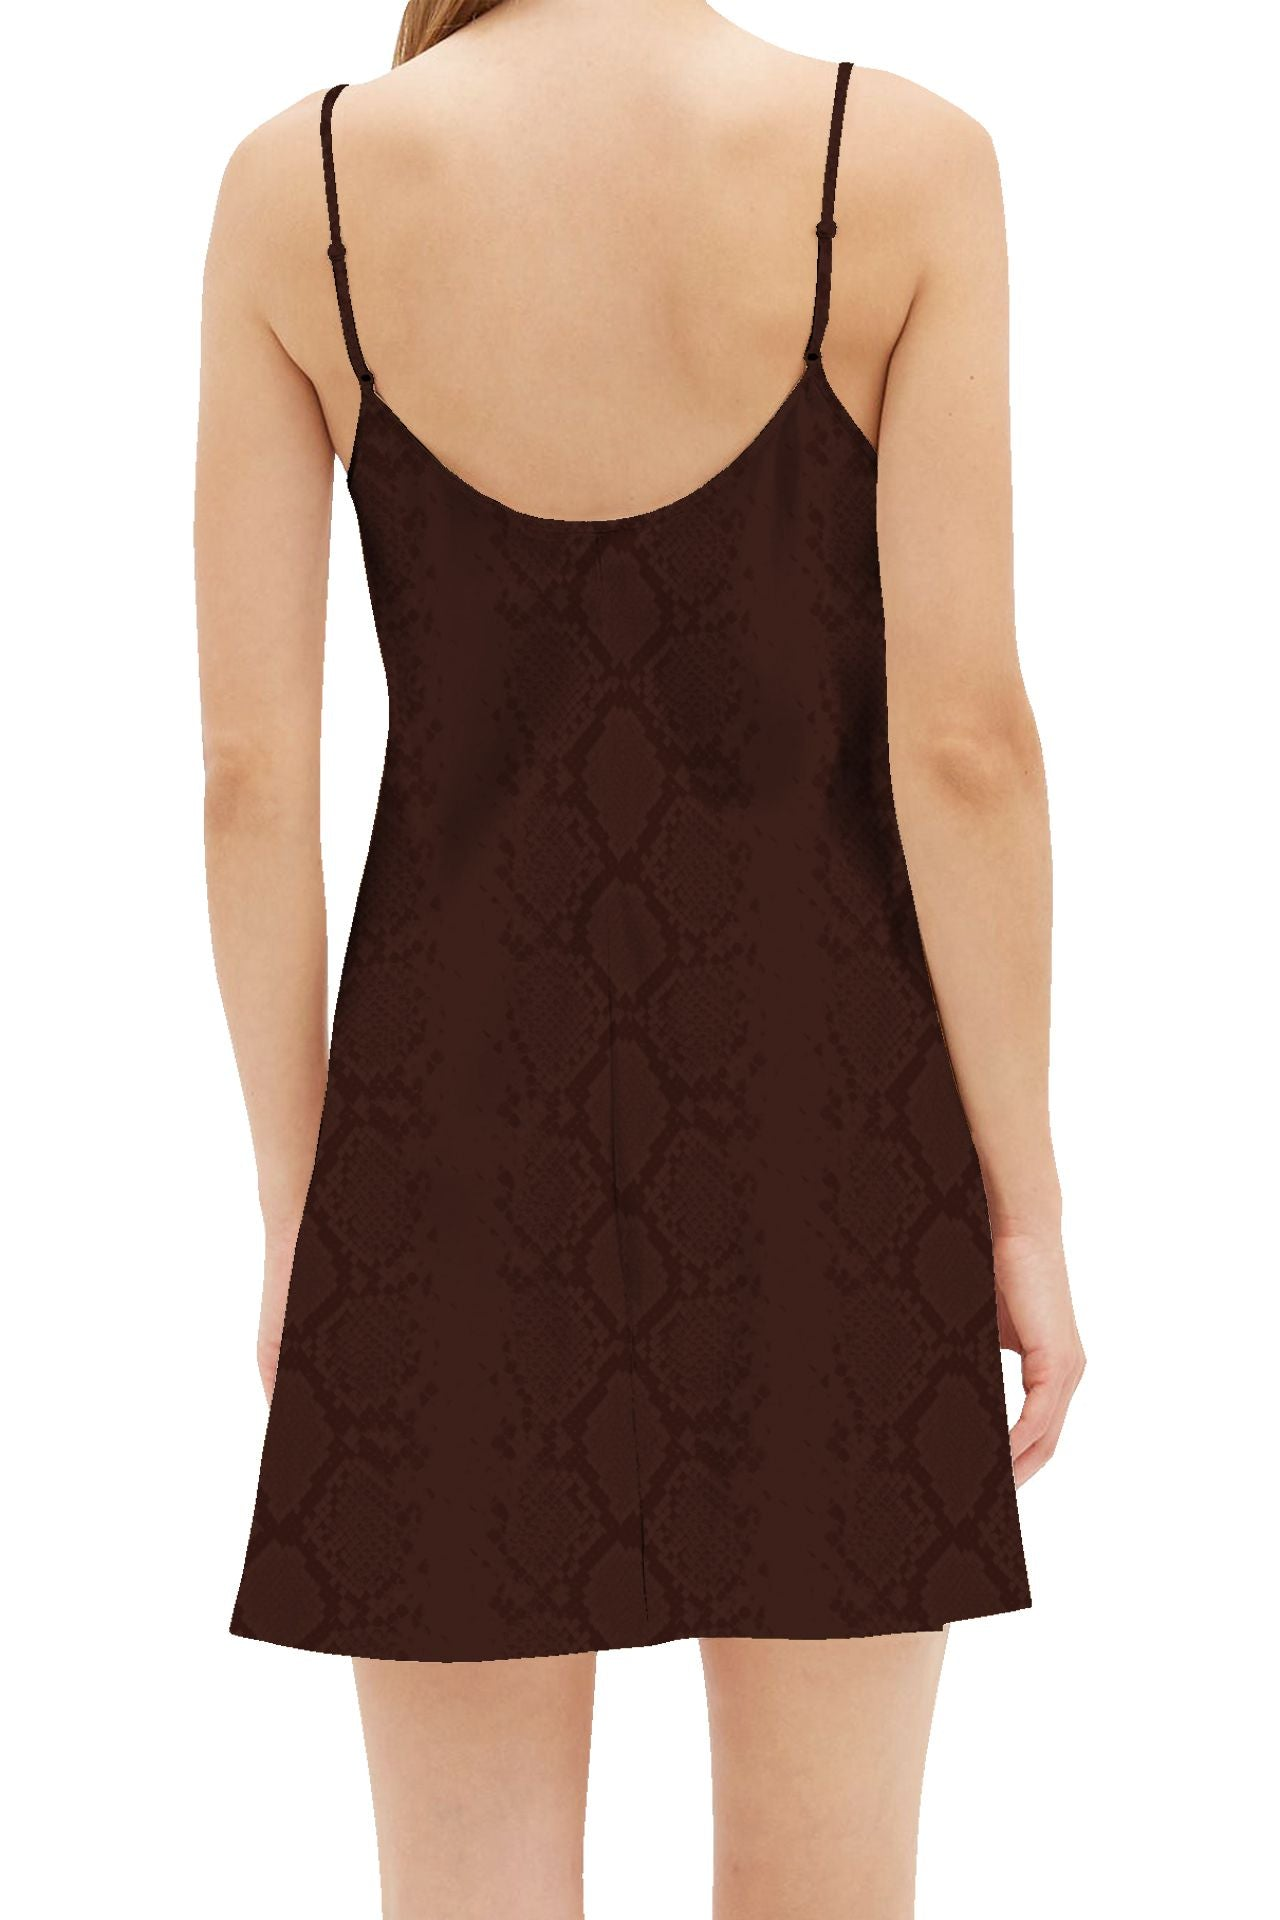 Sustainable Cupro  Mini  Slip Dress in Golden Harvest